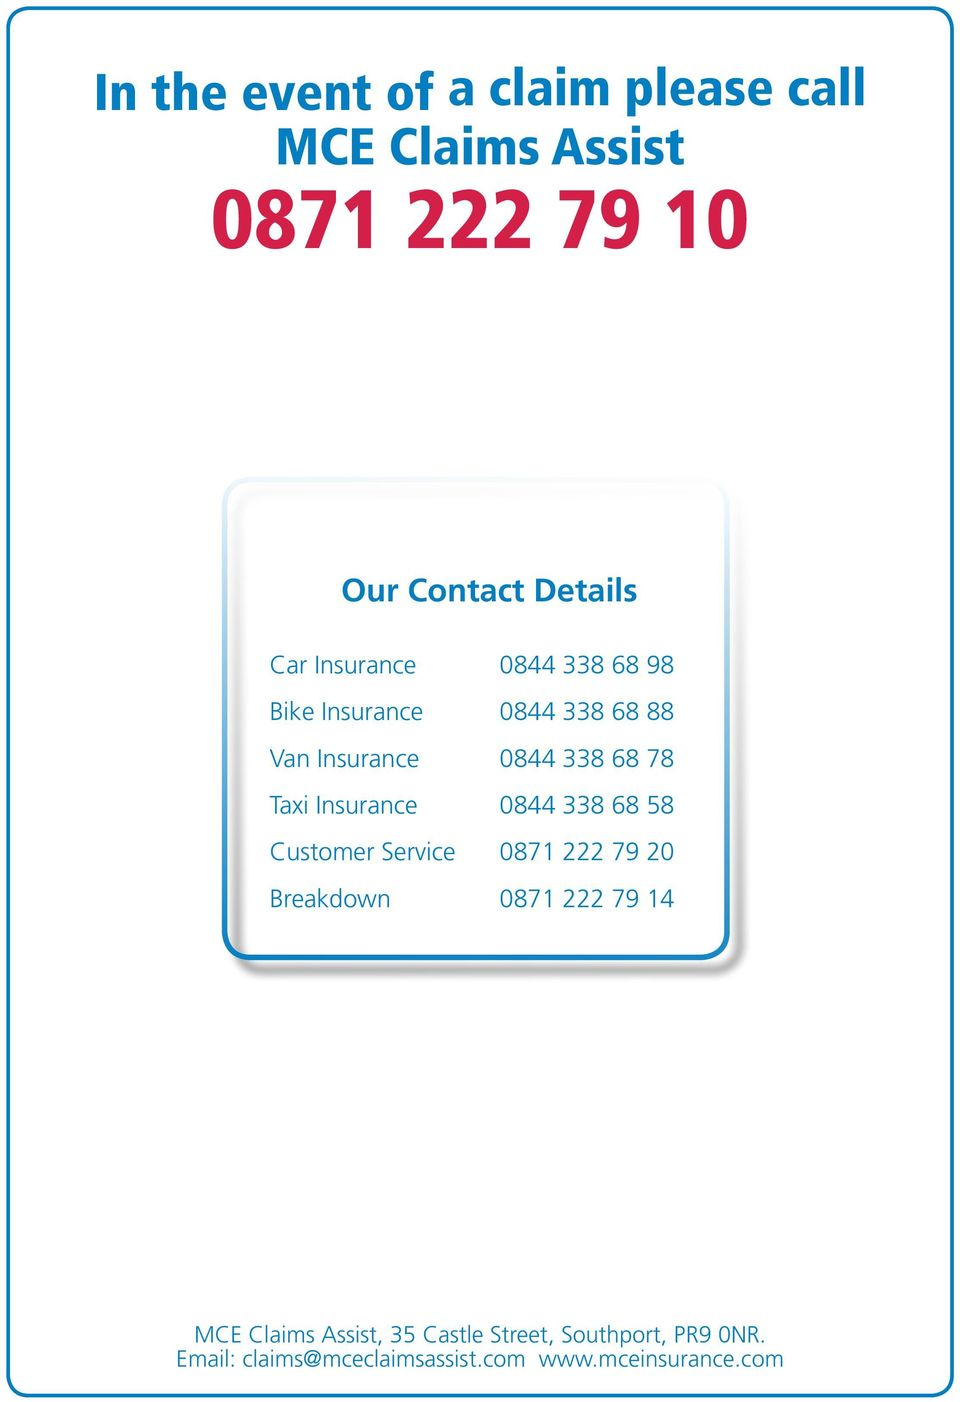 Insurance 0844 338 68 58 Customer Service 0871 222 79 20 Breakdown 0871 222 79 14 MCE Claims